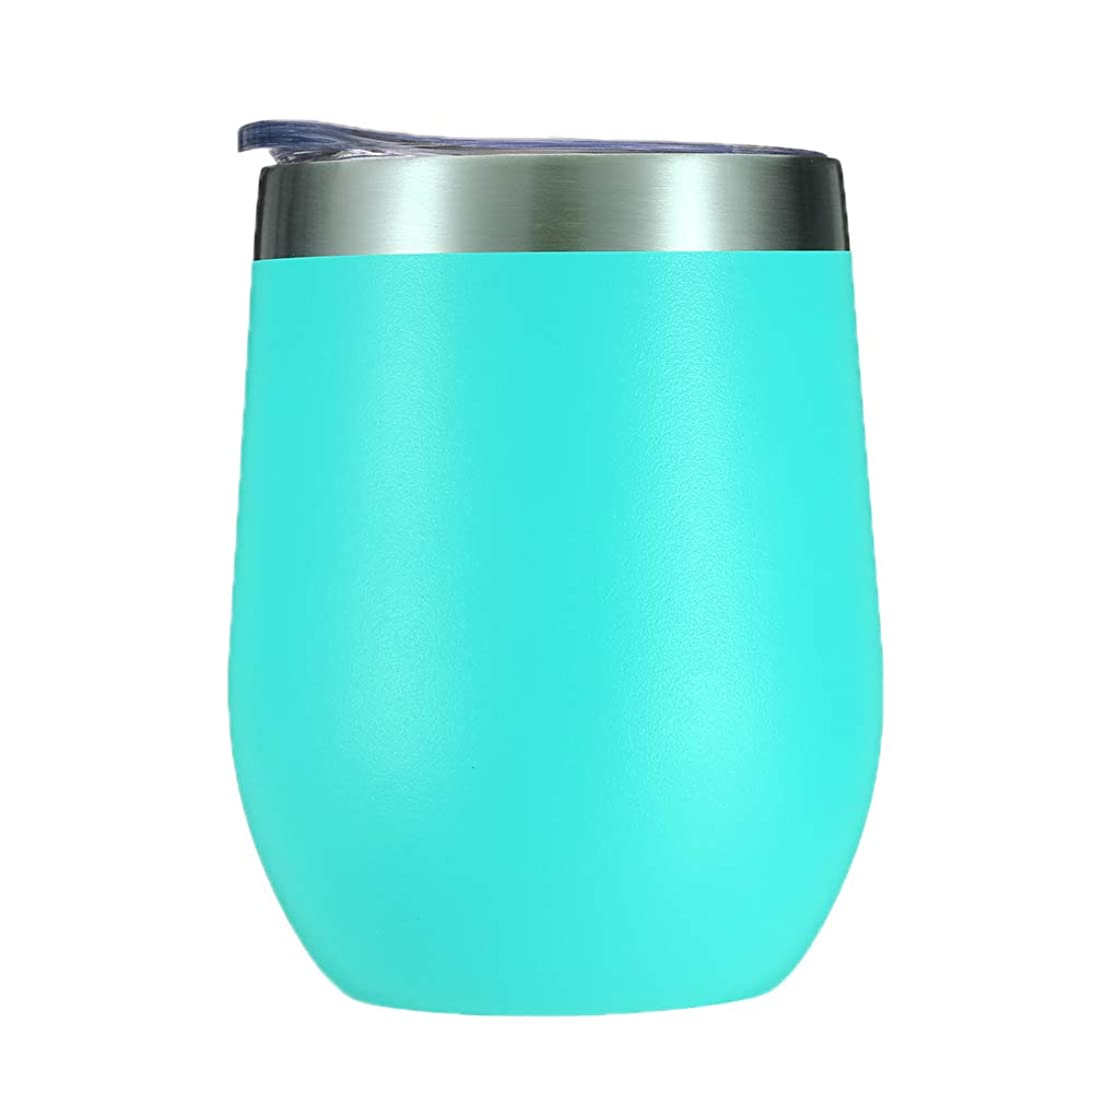 Voraca 12 oz Stainless Steel Wine Glass Tumbler with Lid, Double Wall Vacuum Insulated  Travel Cup for Coffee, Cocktails, Ice Cream Green arue521108764339